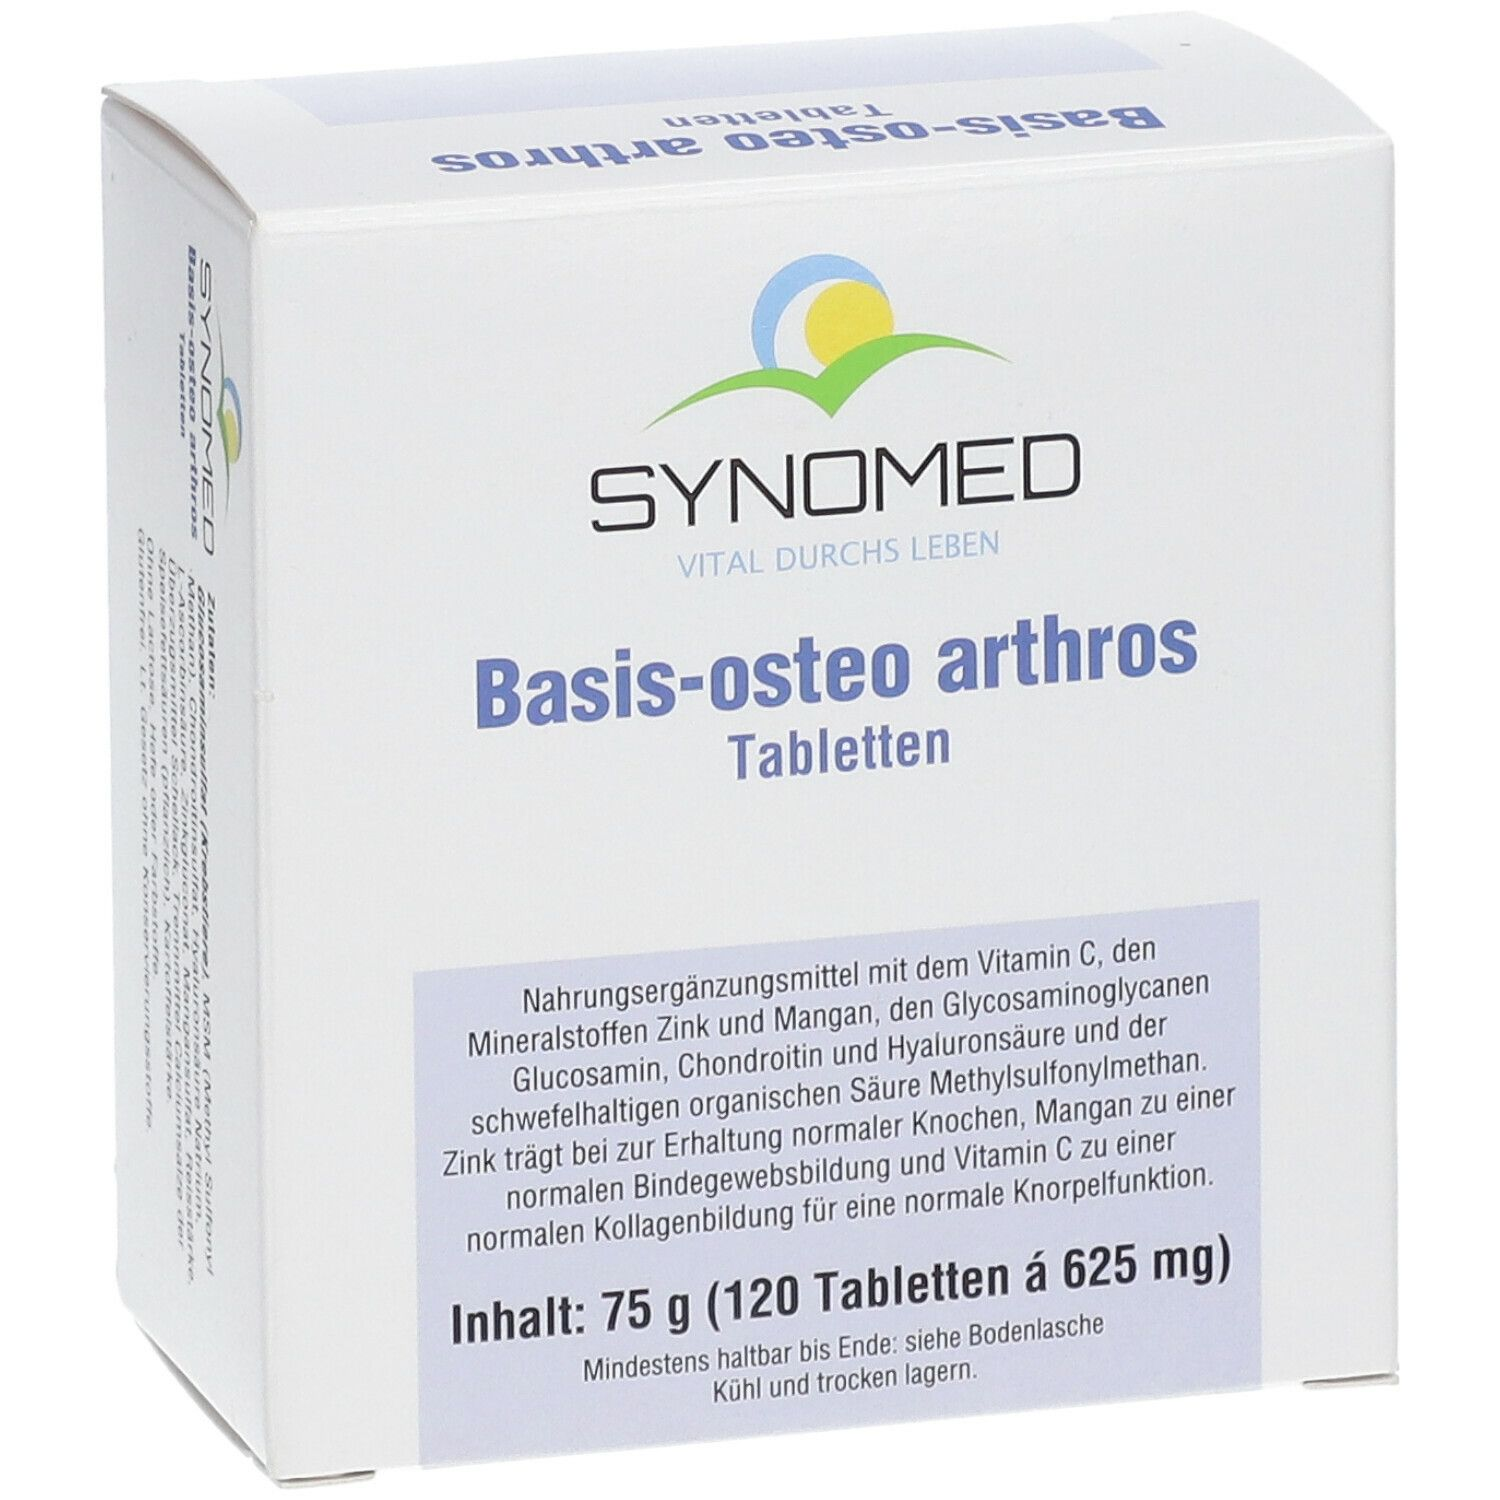 SYNOMED Basis-osteo arthros